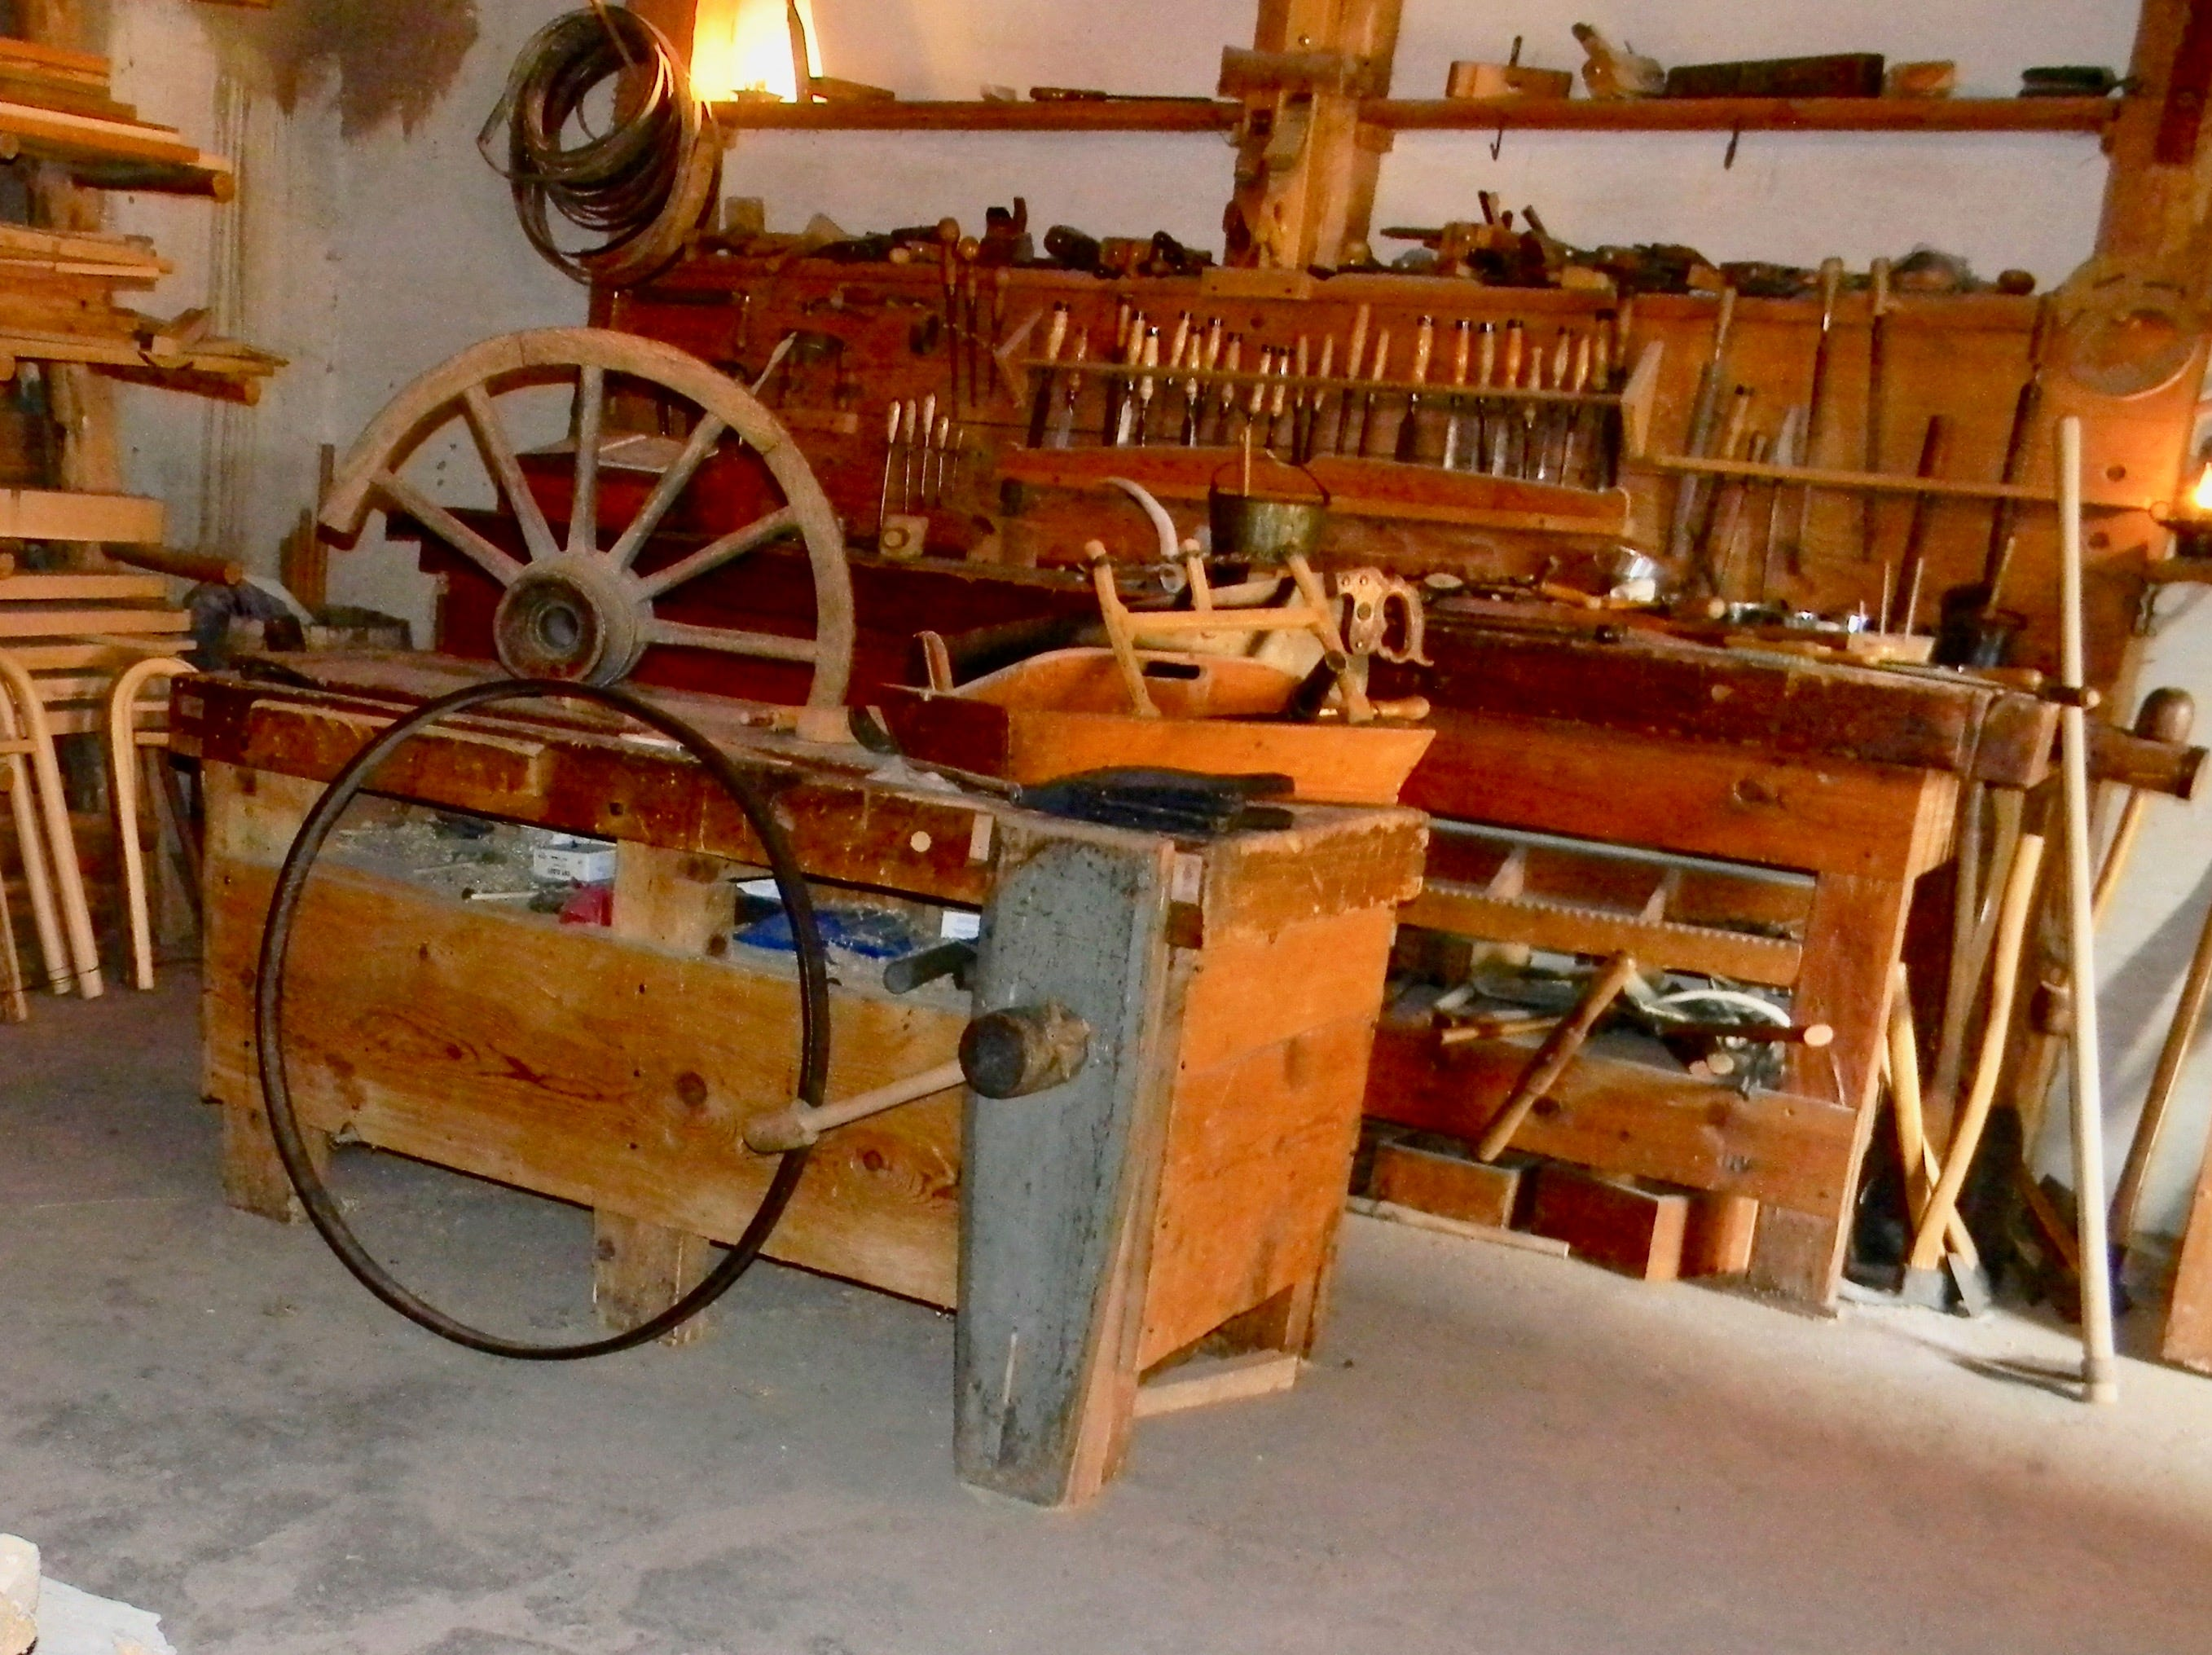 Compare the carpenter shop at Bent's Old Fort, where wagons were repaired, to today's garages, essential in keeping our wheels turning.